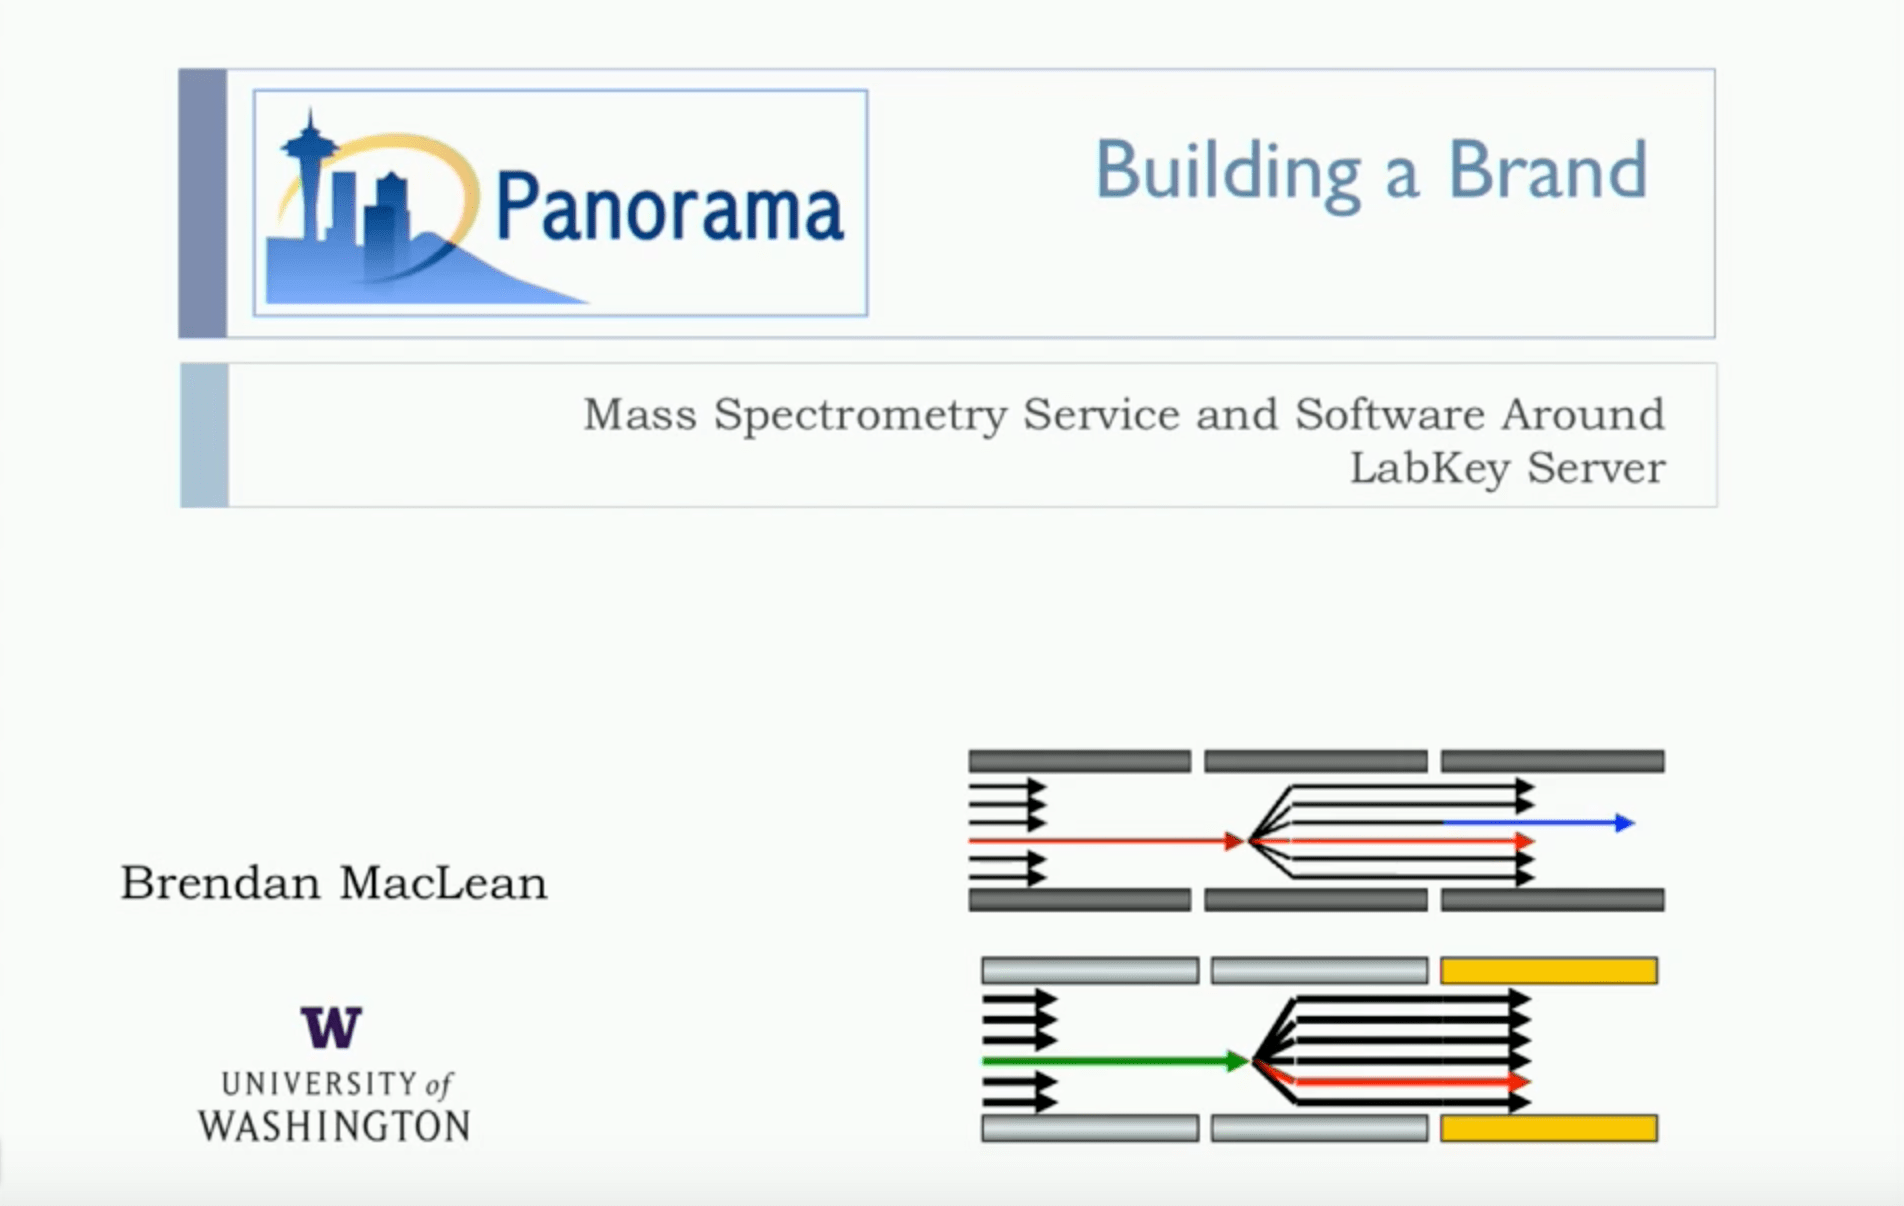 Panorama: Building a Branded Mass Spectrometry Service and Software Around LabKey Server